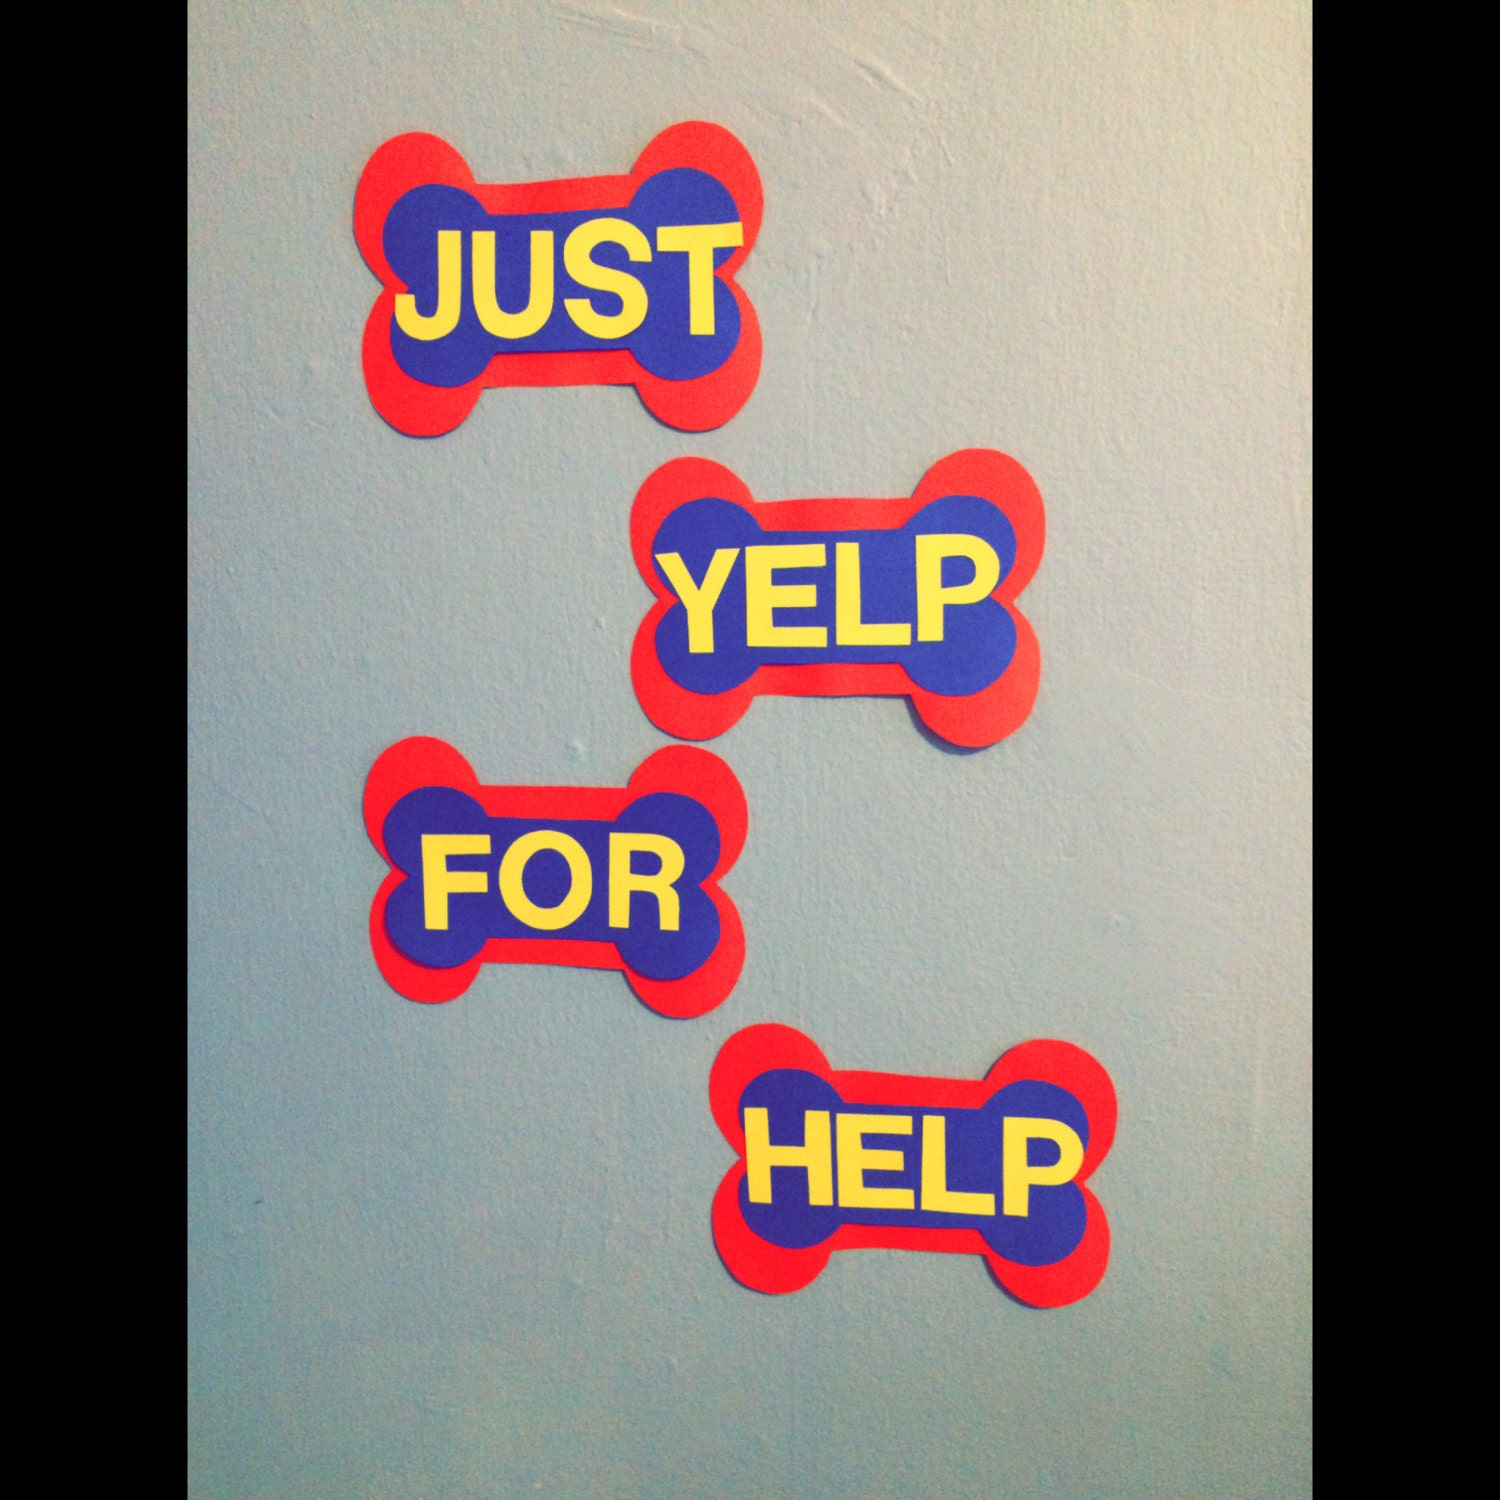 Blue apron yelp - Paw Patrol Just Yelp For Help Decoration